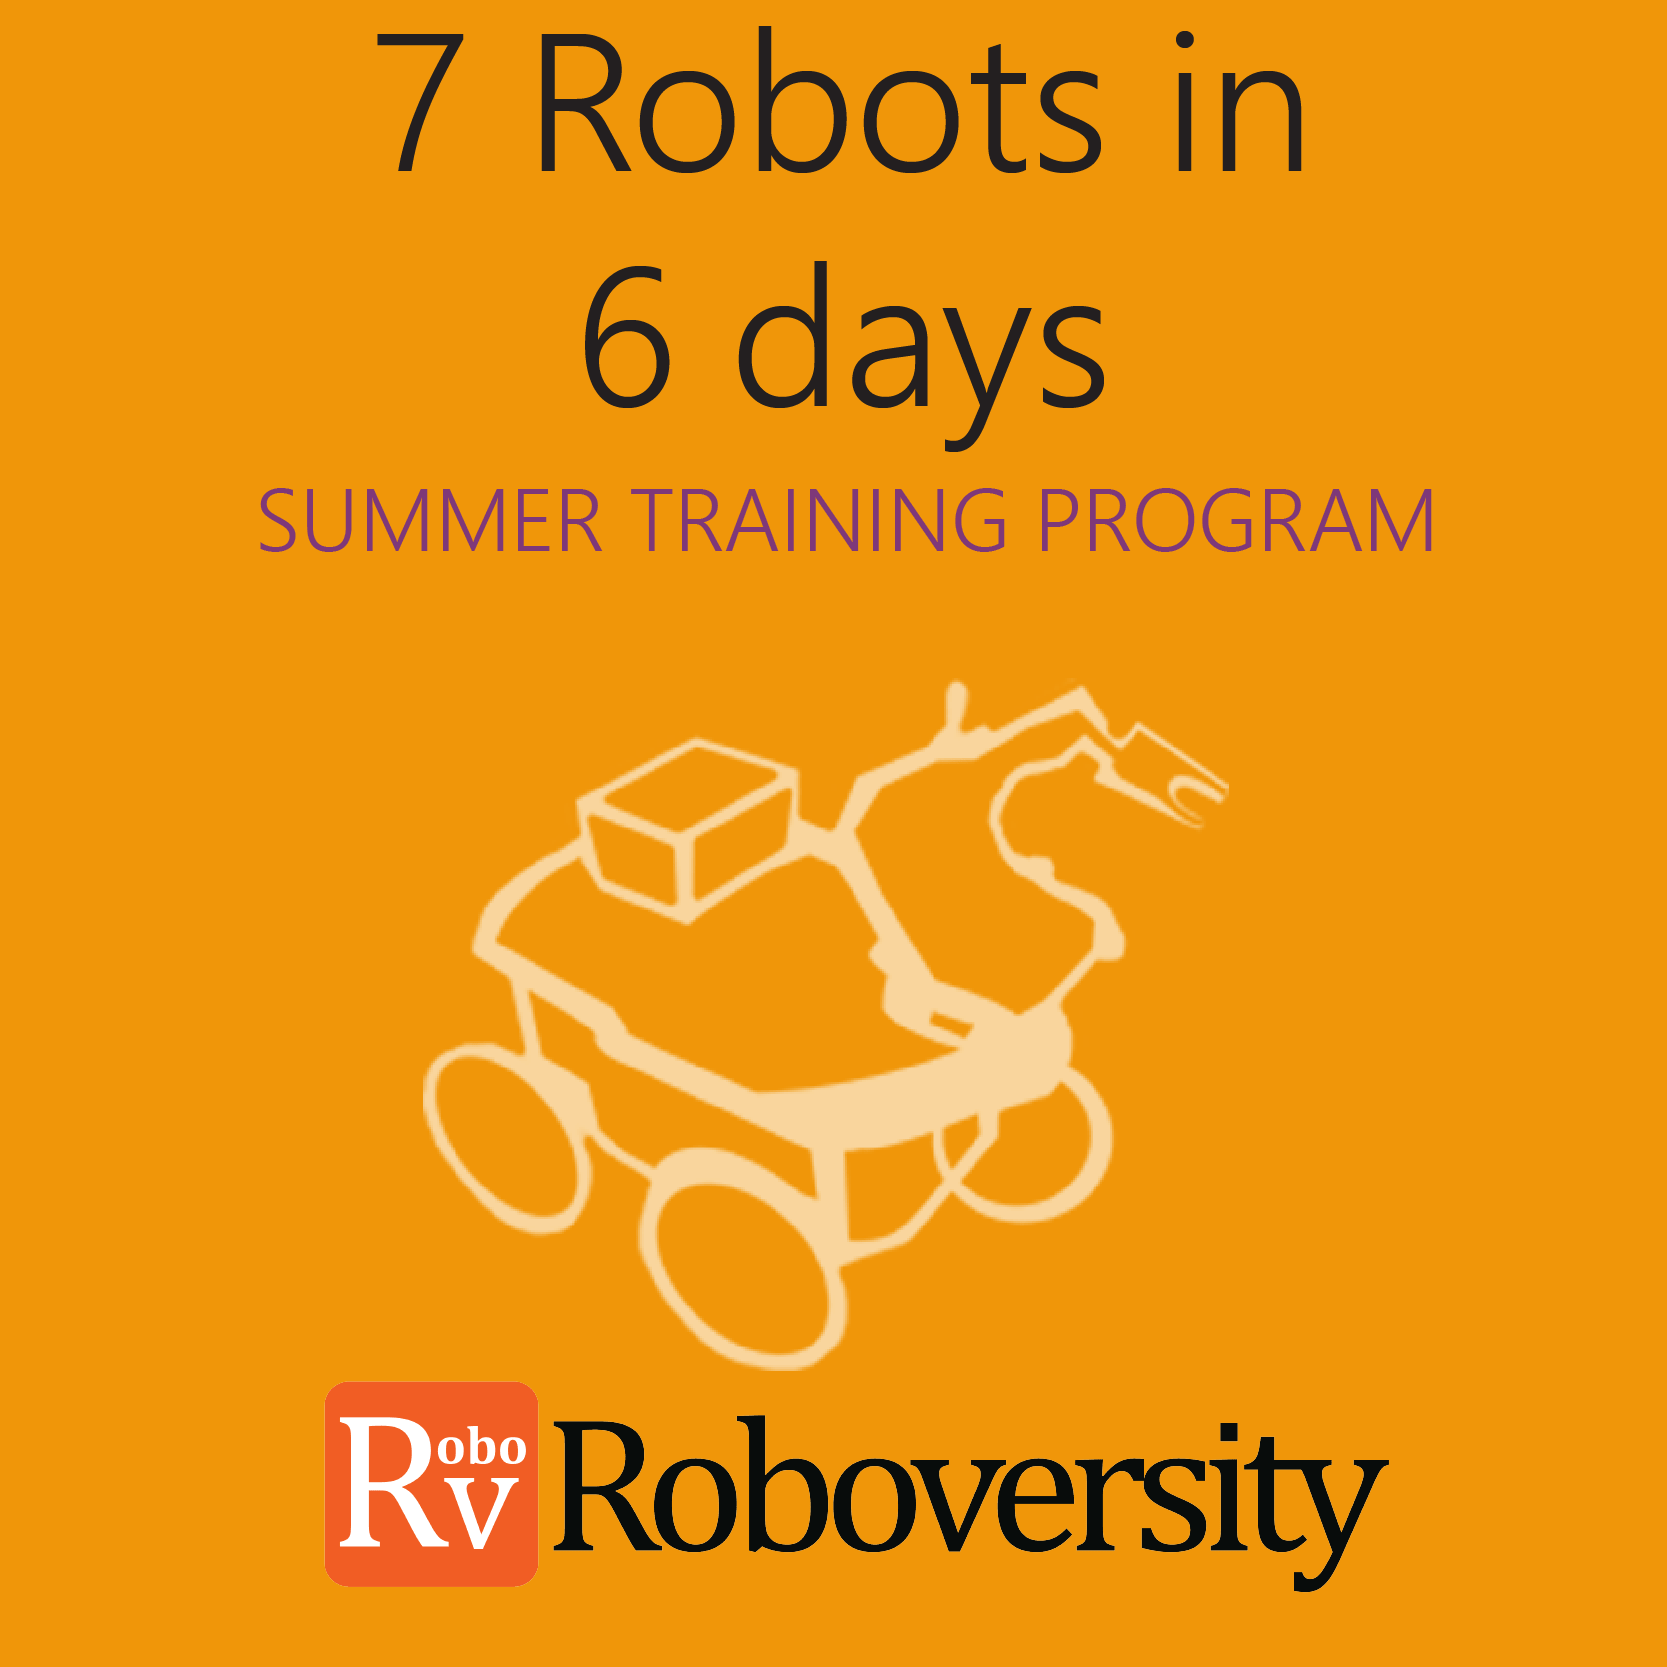 Summer Training Program in Robotics - 7 Robots in 6 Days in Delhi